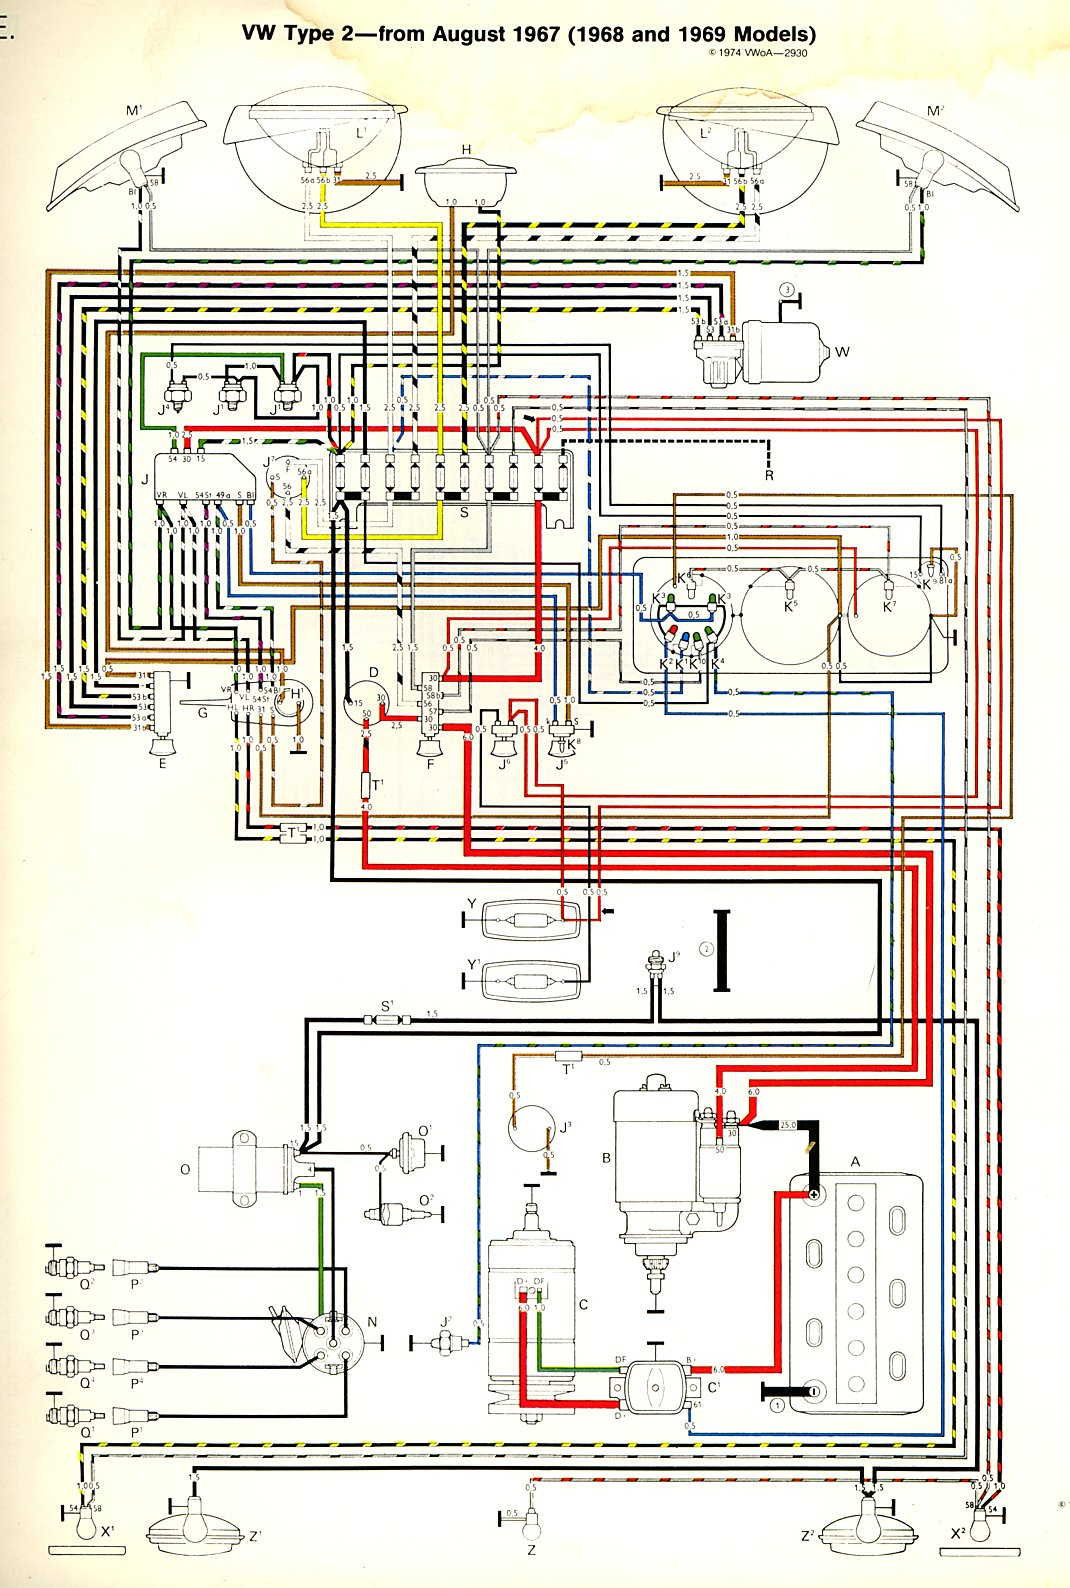 baybus_6869a bus wiring diagram vw wiring harness diagram \u2022 wiring diagrams j 1978 vw super beetle wiring diagram at soozxer.org